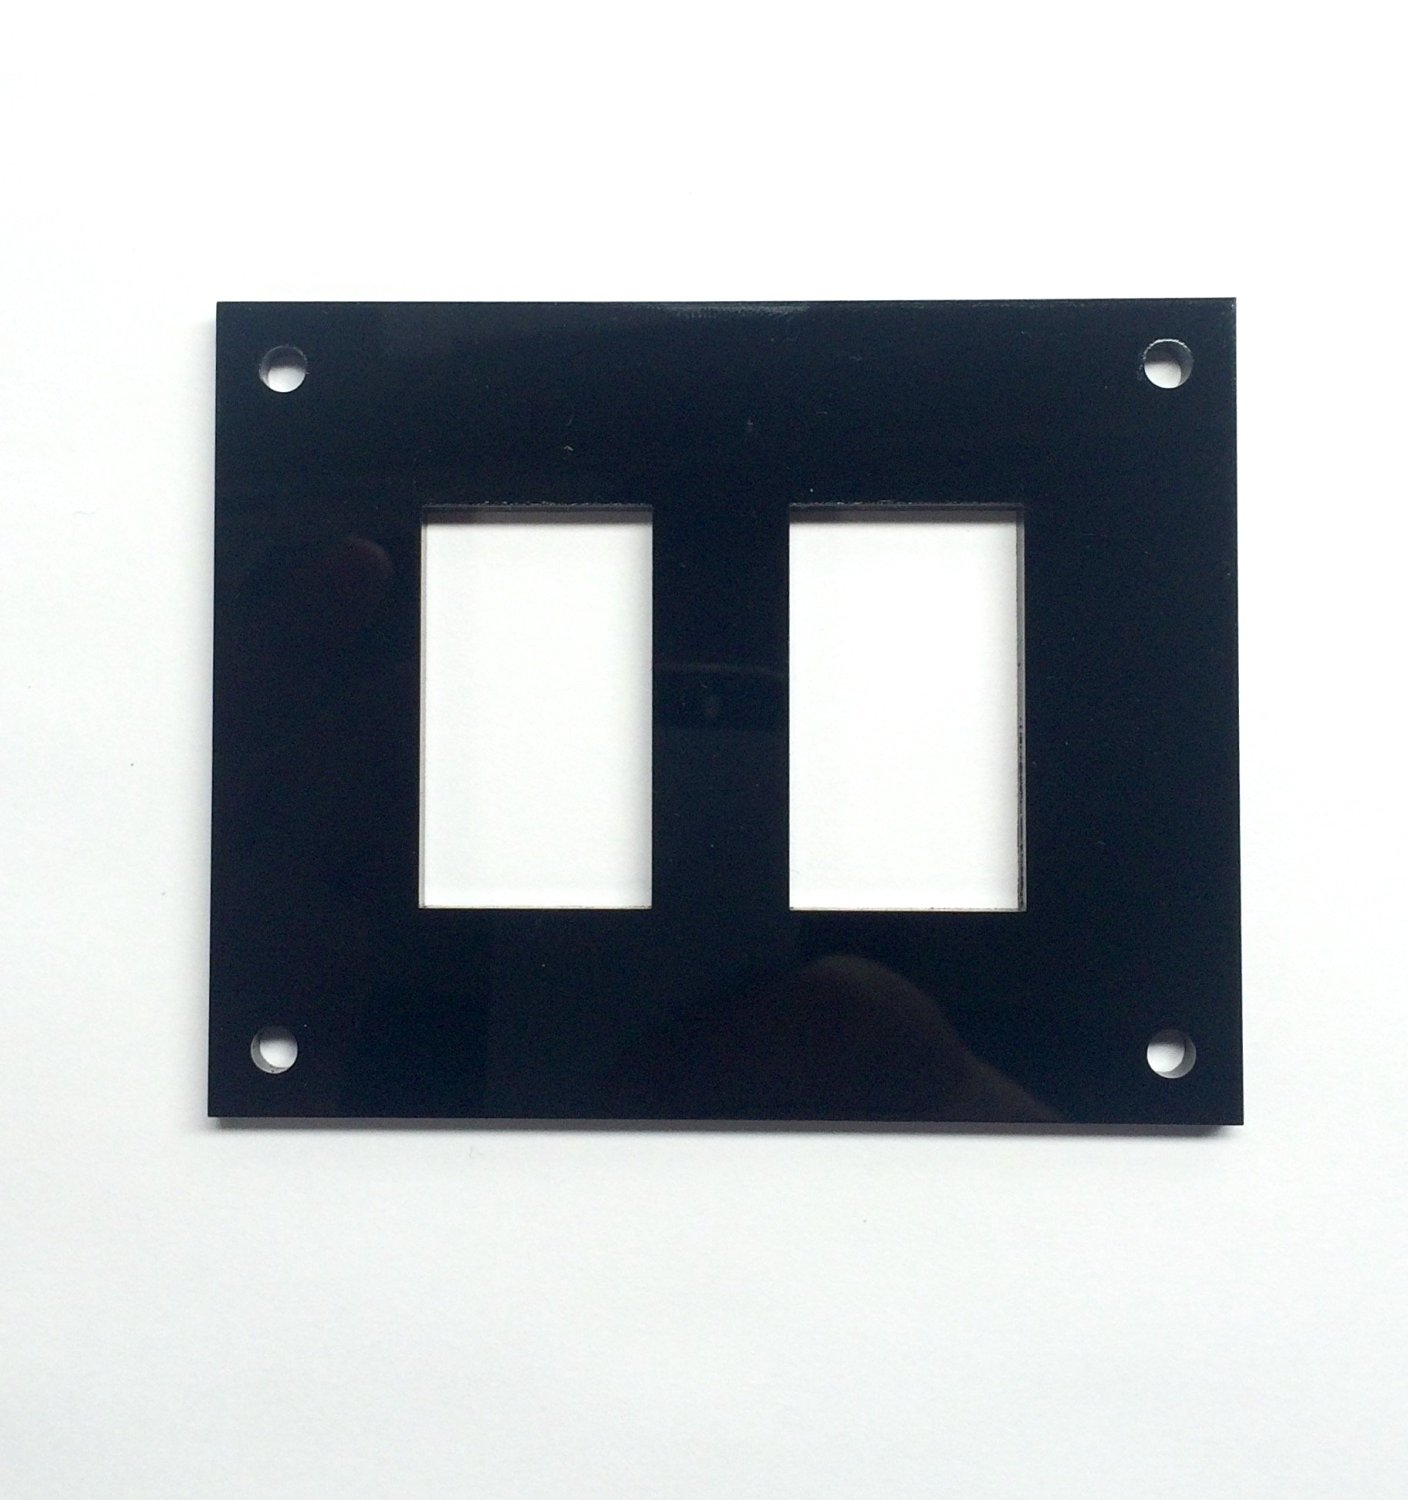 Cheap Acrylic Panel, find Acrylic Panel deals on line at Alibaba.com